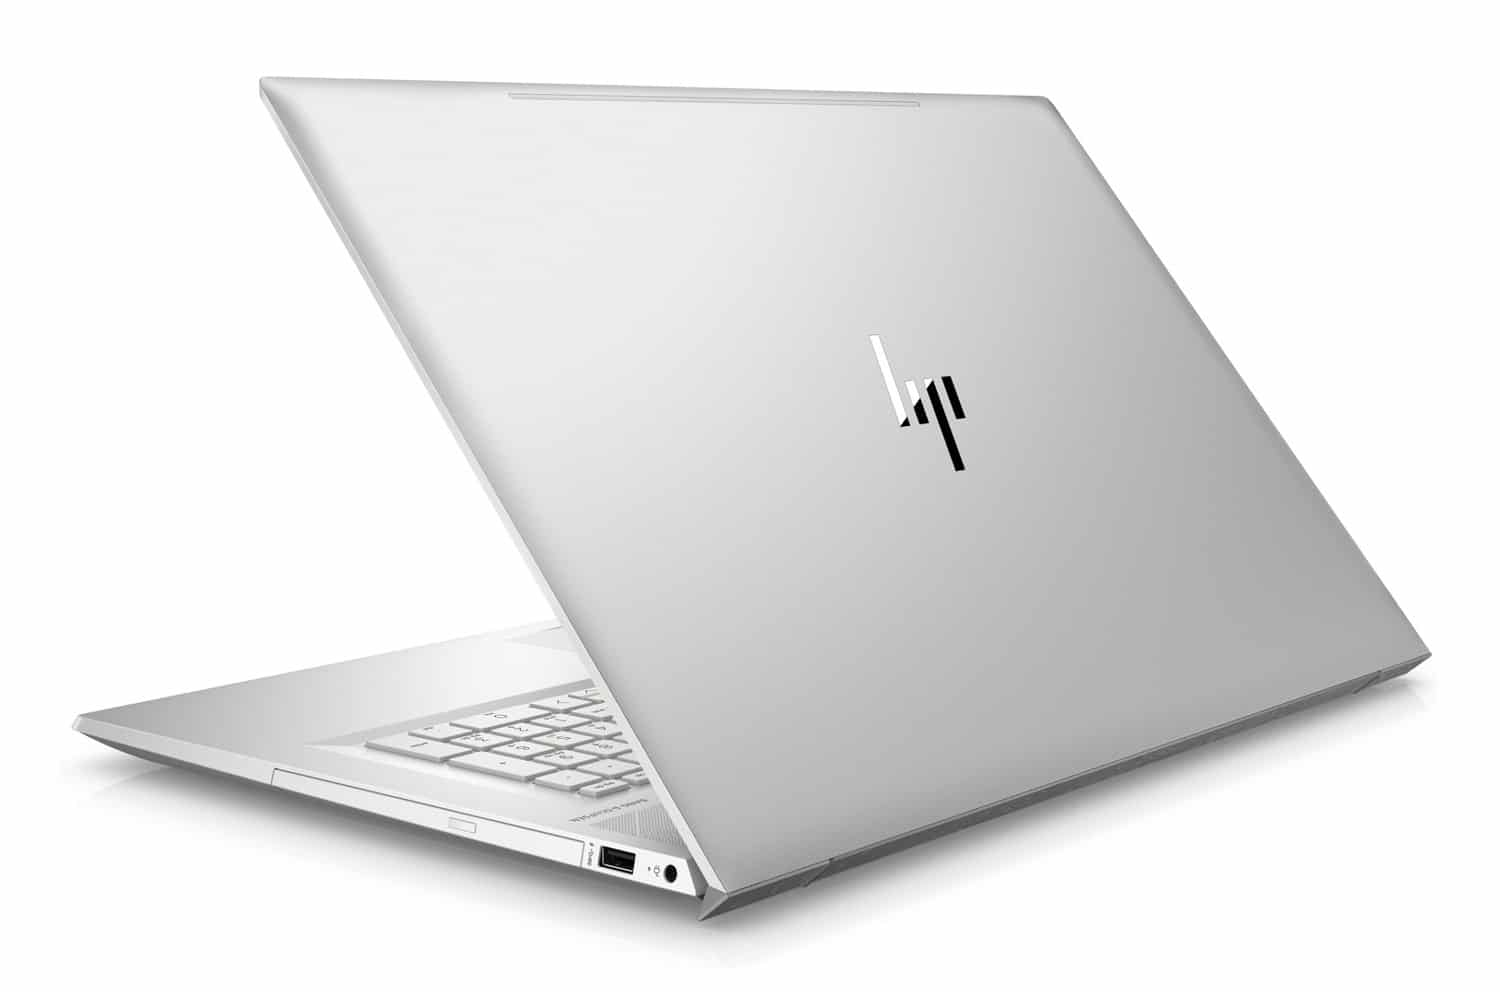 "HP Envy 17-bw0017nf, PC portable 17"" fin 16Go SSD i7 MX150 à 1235€"